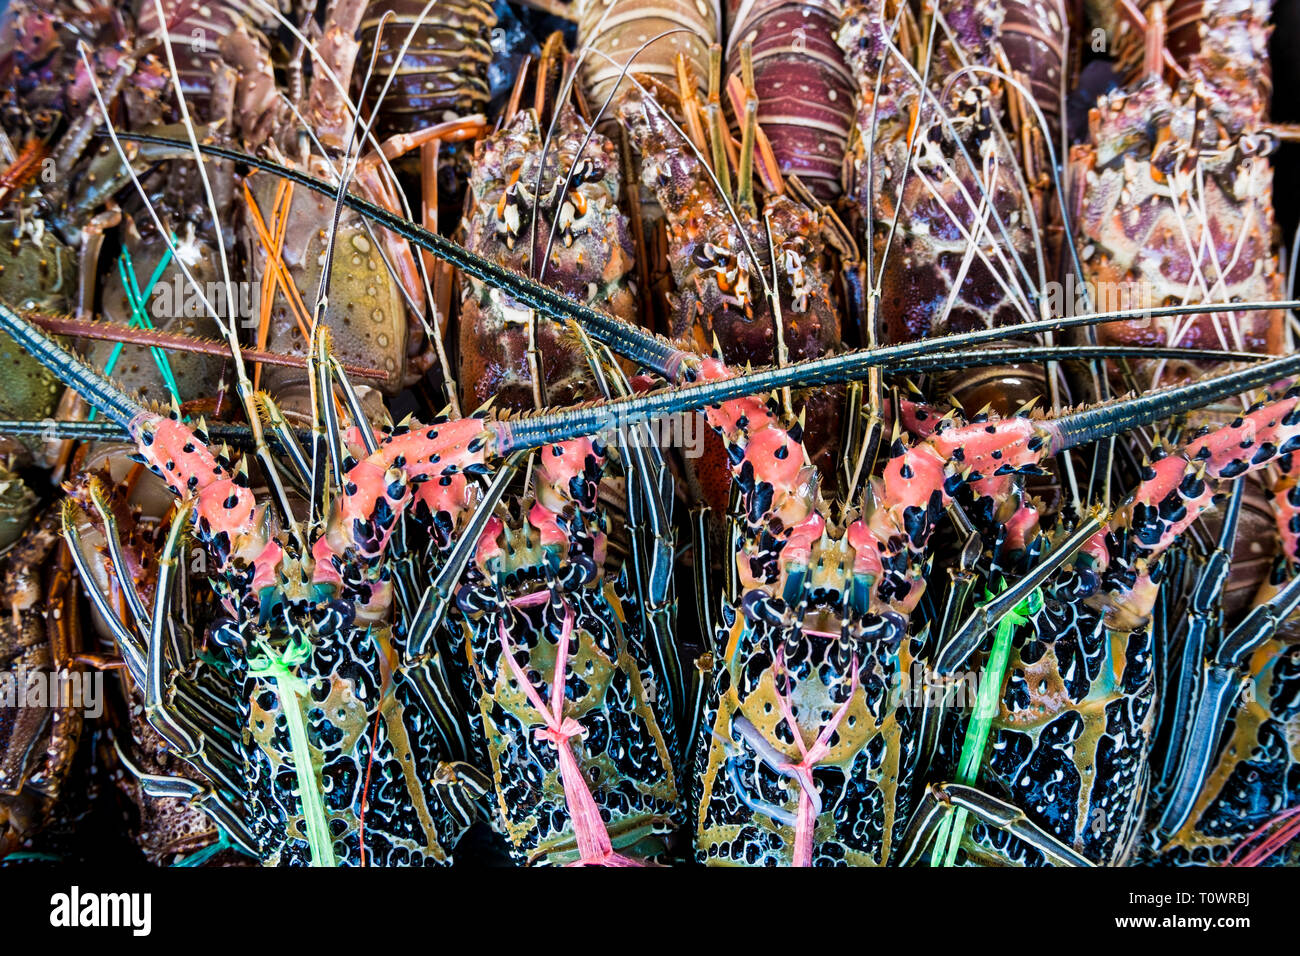 Asian lobster, for sale at the fresh seafood market in Kota Kinabalu, Sabah, Borneo, Malaysia. - Stock Image